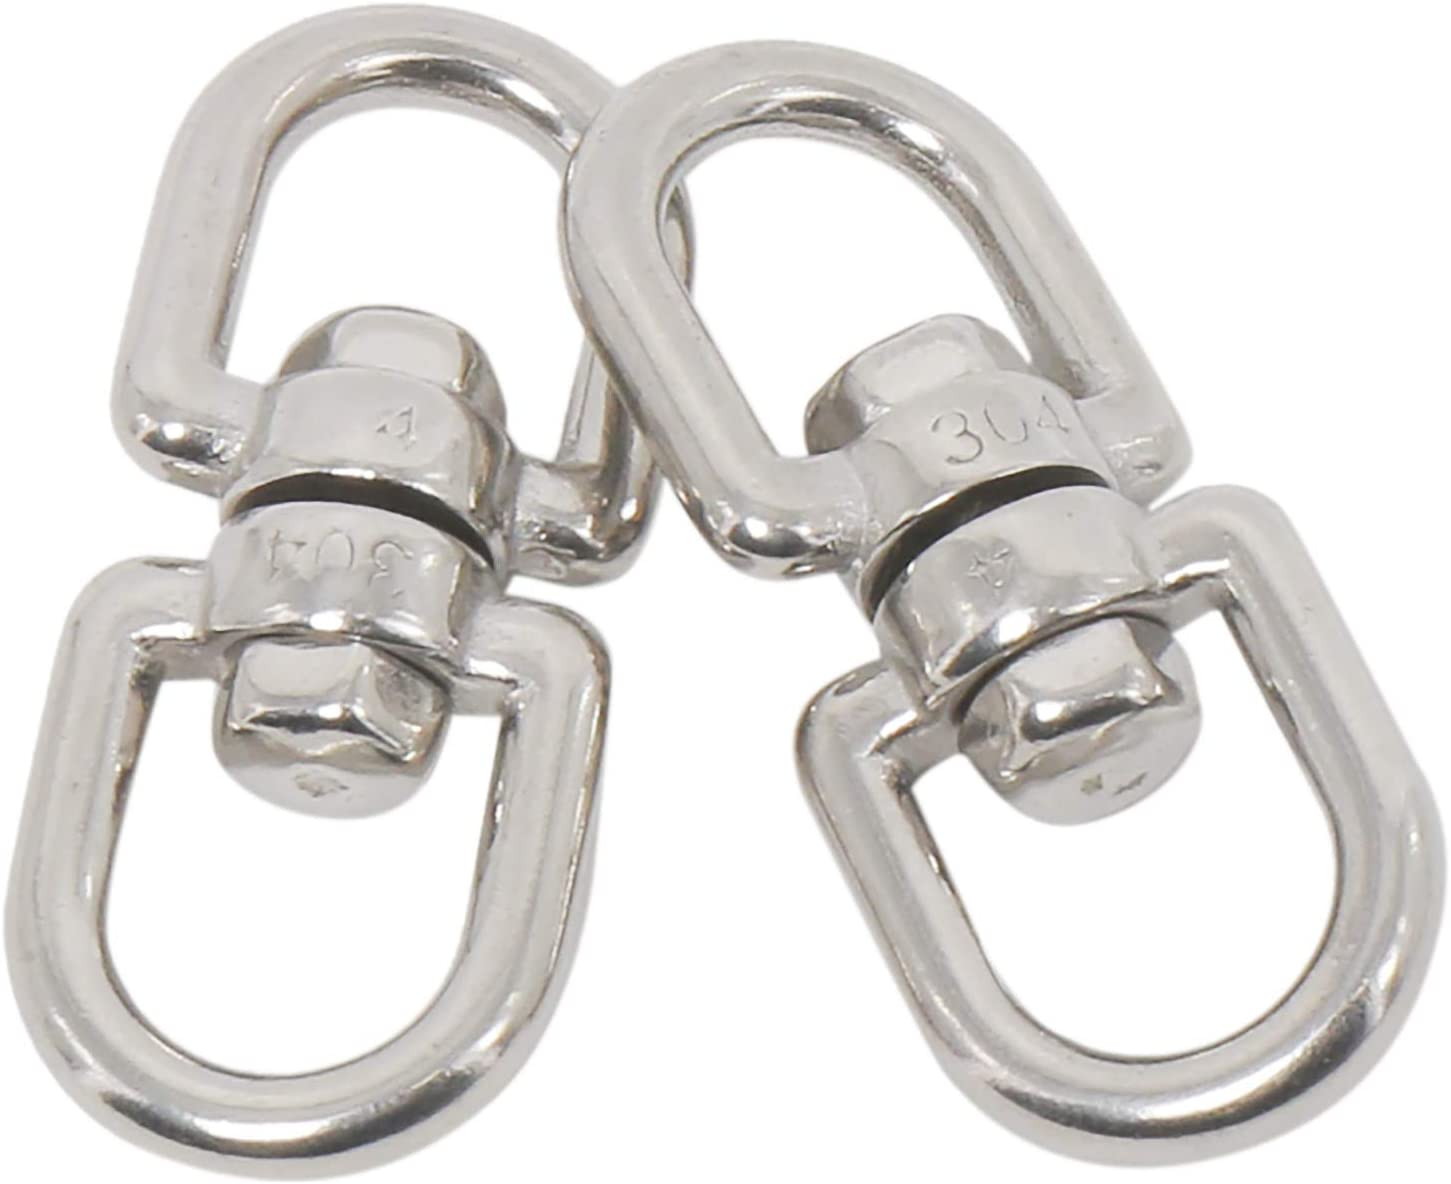 Amarine Made M4 Double Ended Swivel Eye Hook 304 Stainless Steel Eye to Eye Swivel Shackle Ring Connector